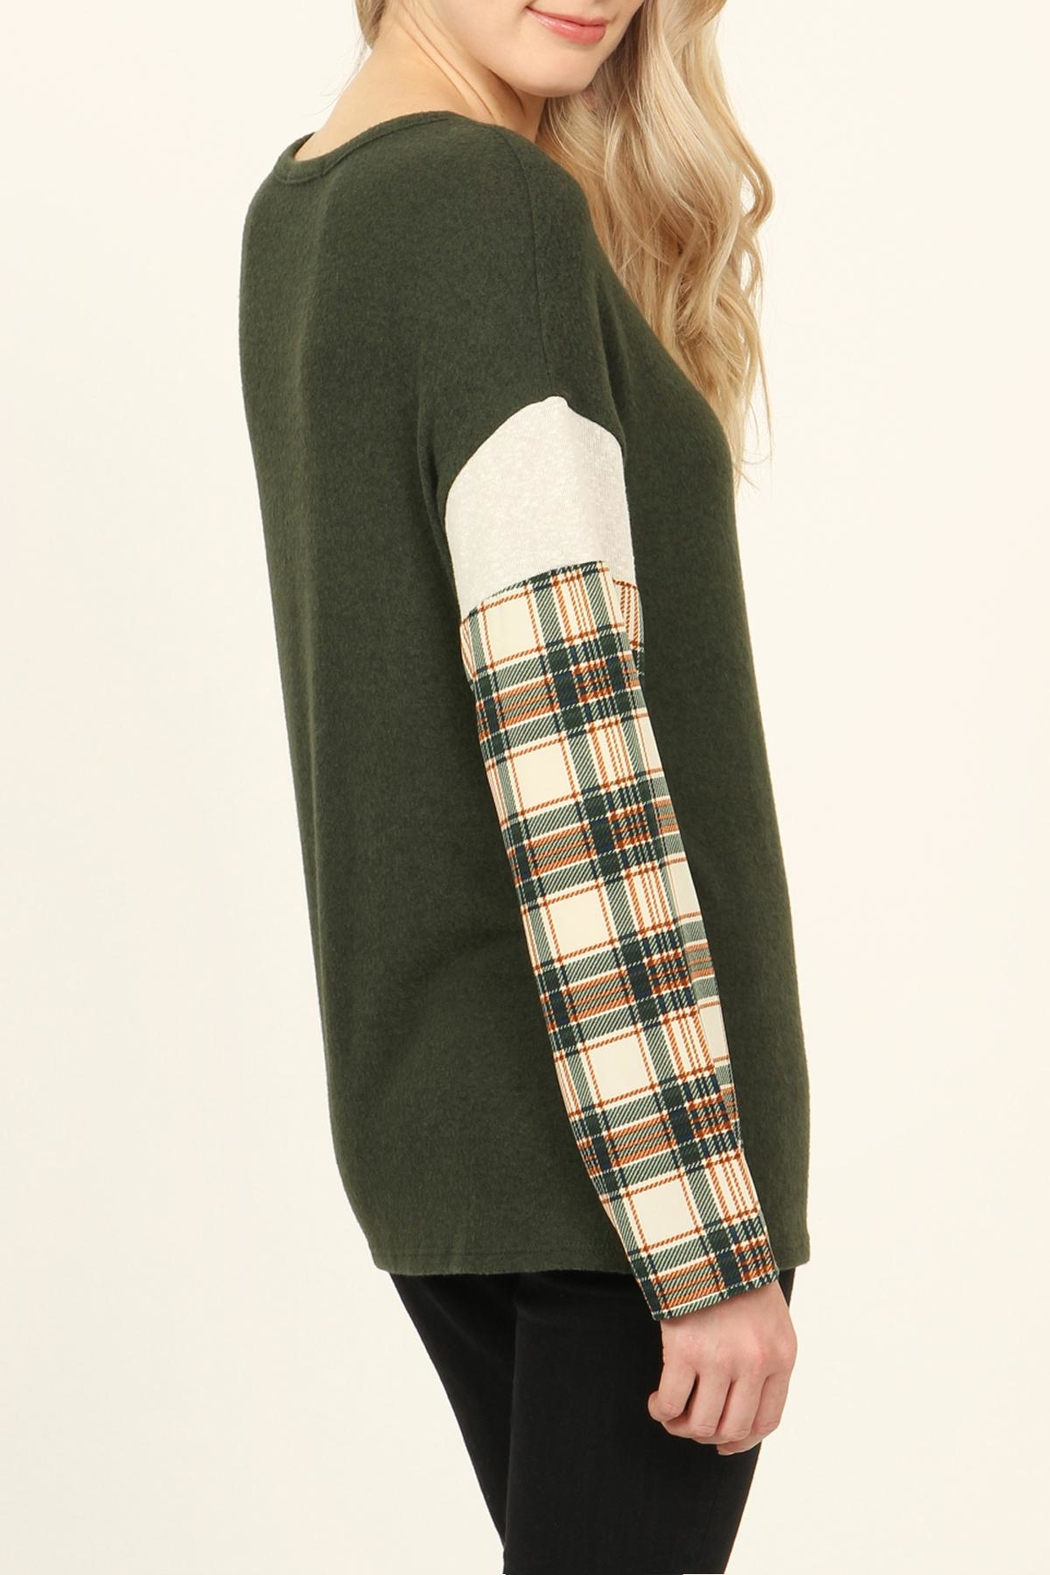 Riah Fashion Plaid-Sleeve Dropped Shoulder-Sweater - Side Cropped Image